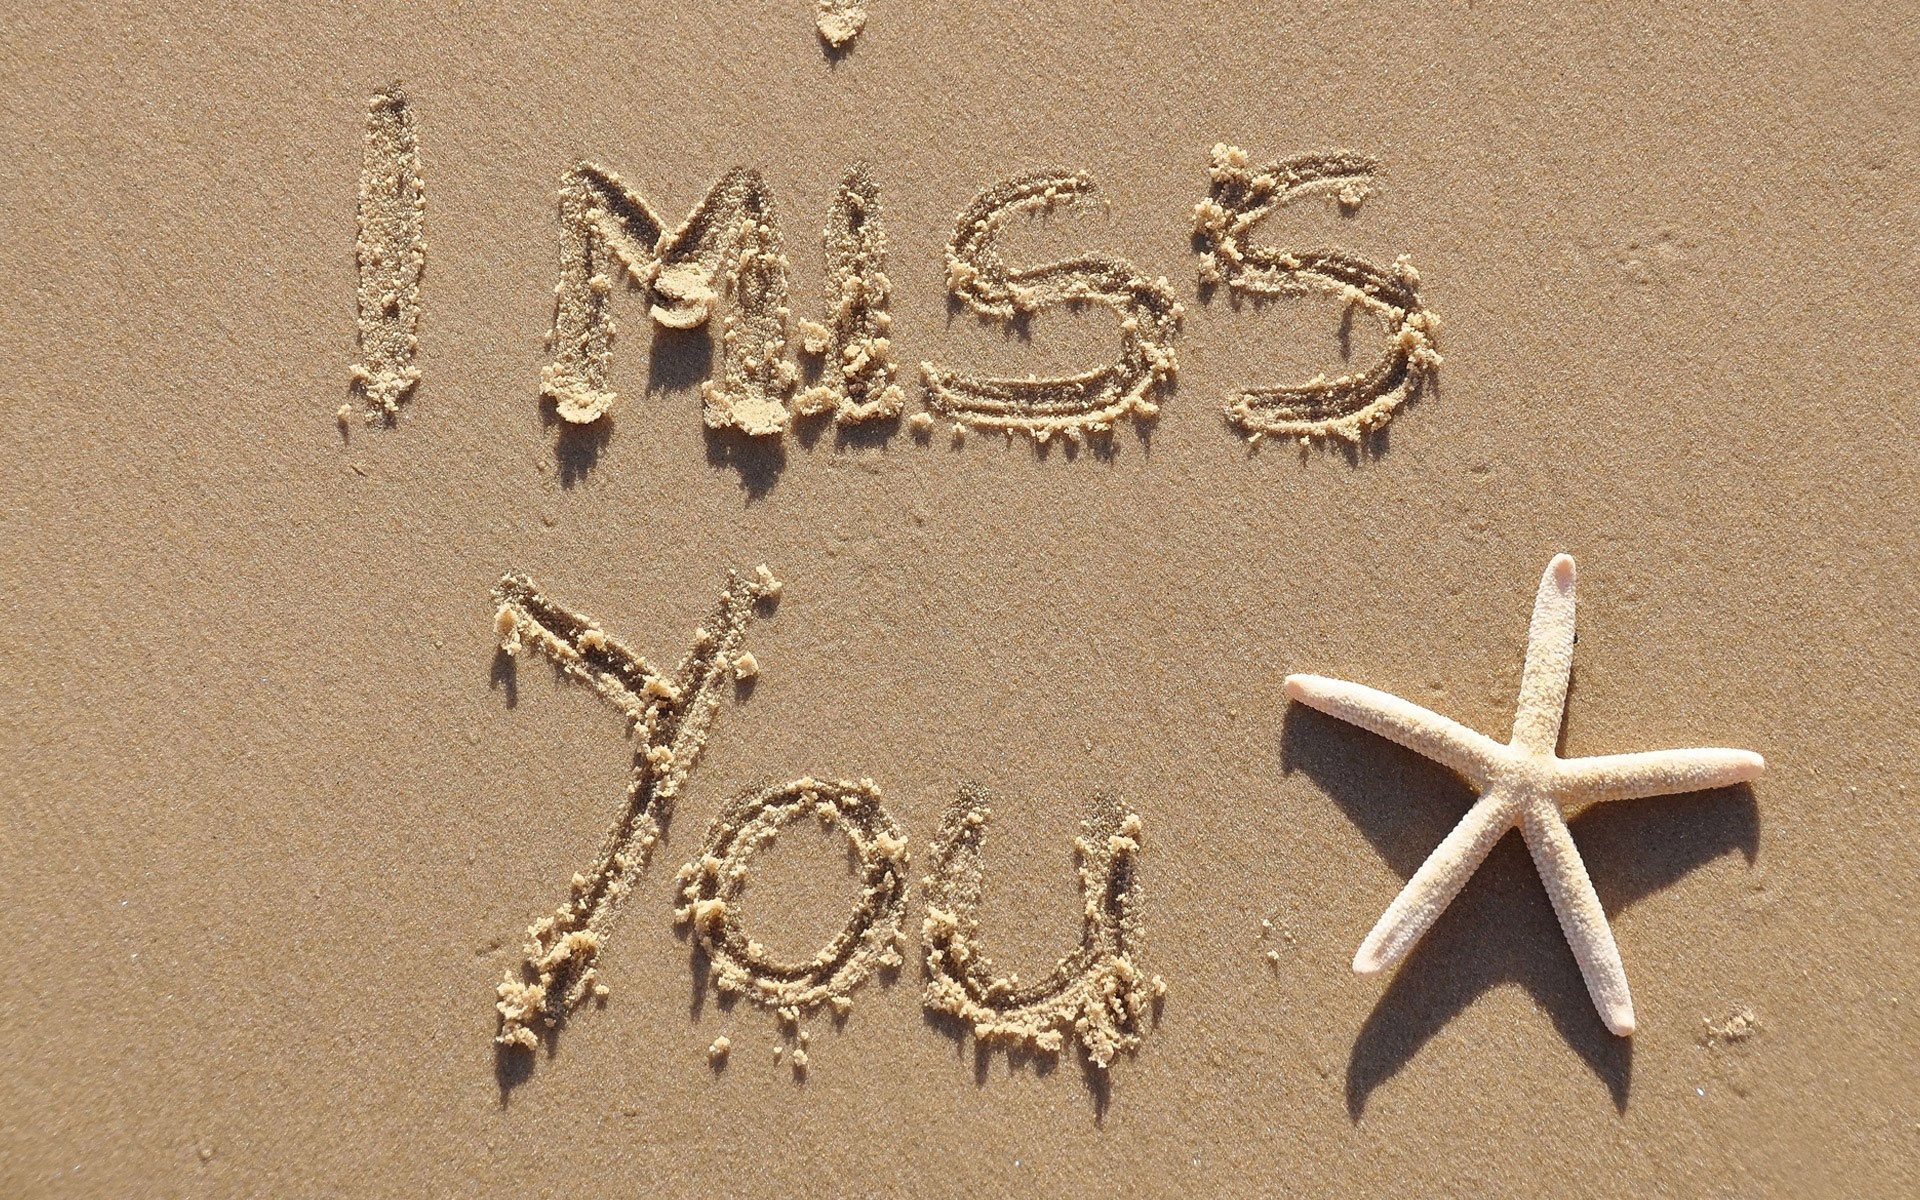 Hd wallpaper you and me - Images Of Missing You